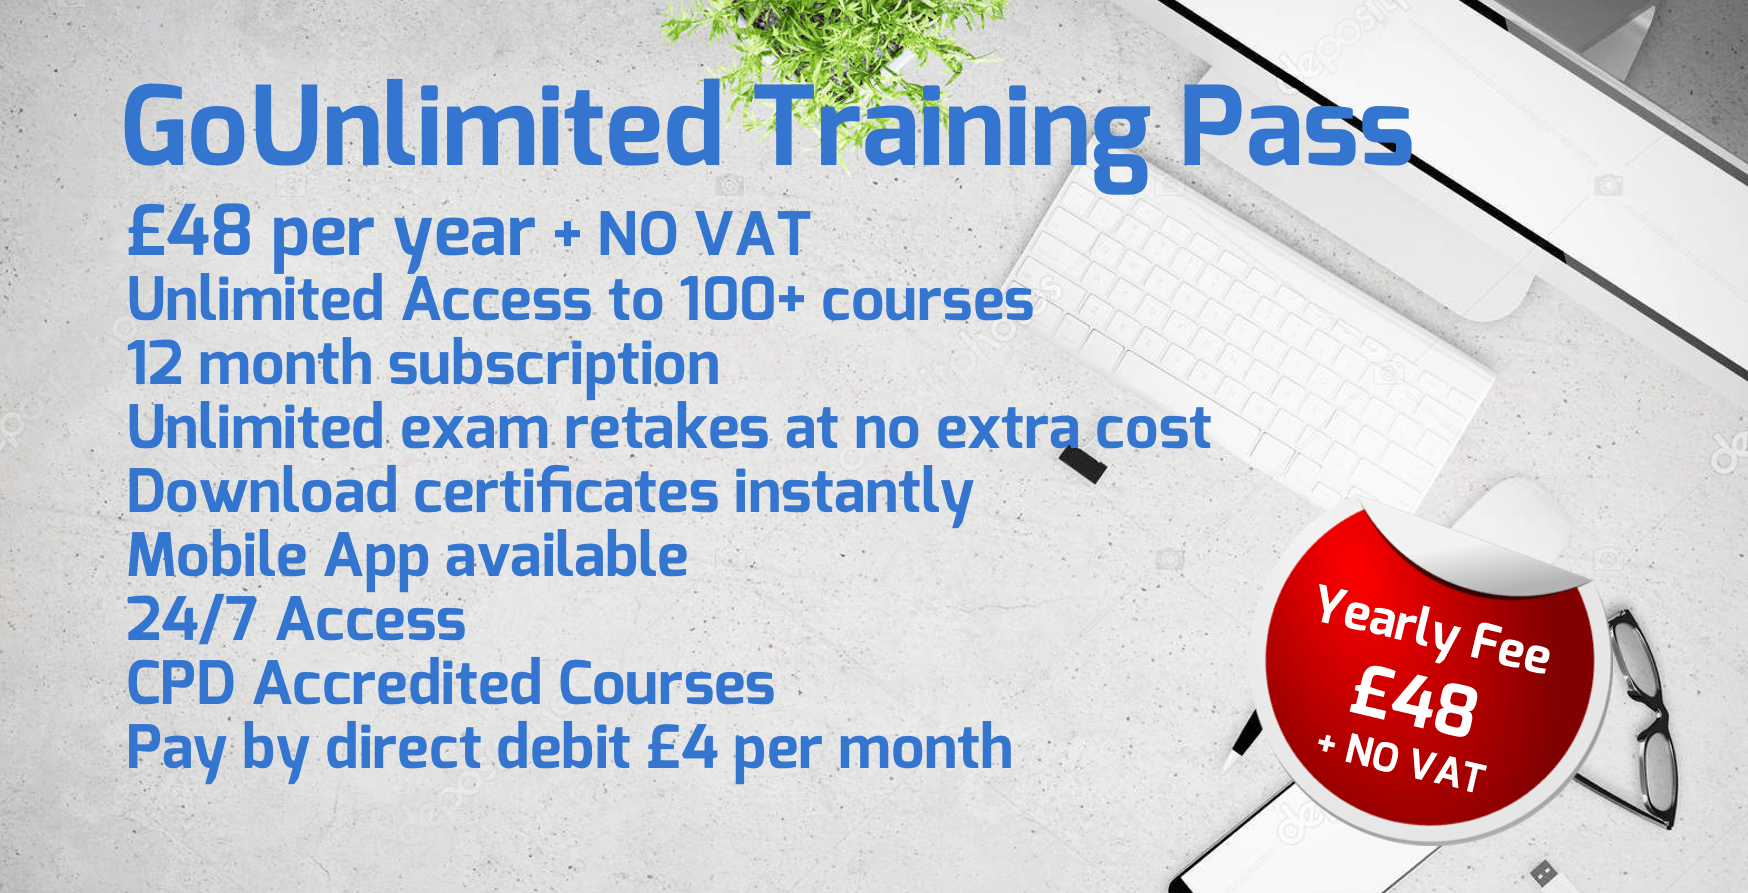 GoUnlimited Training Pass